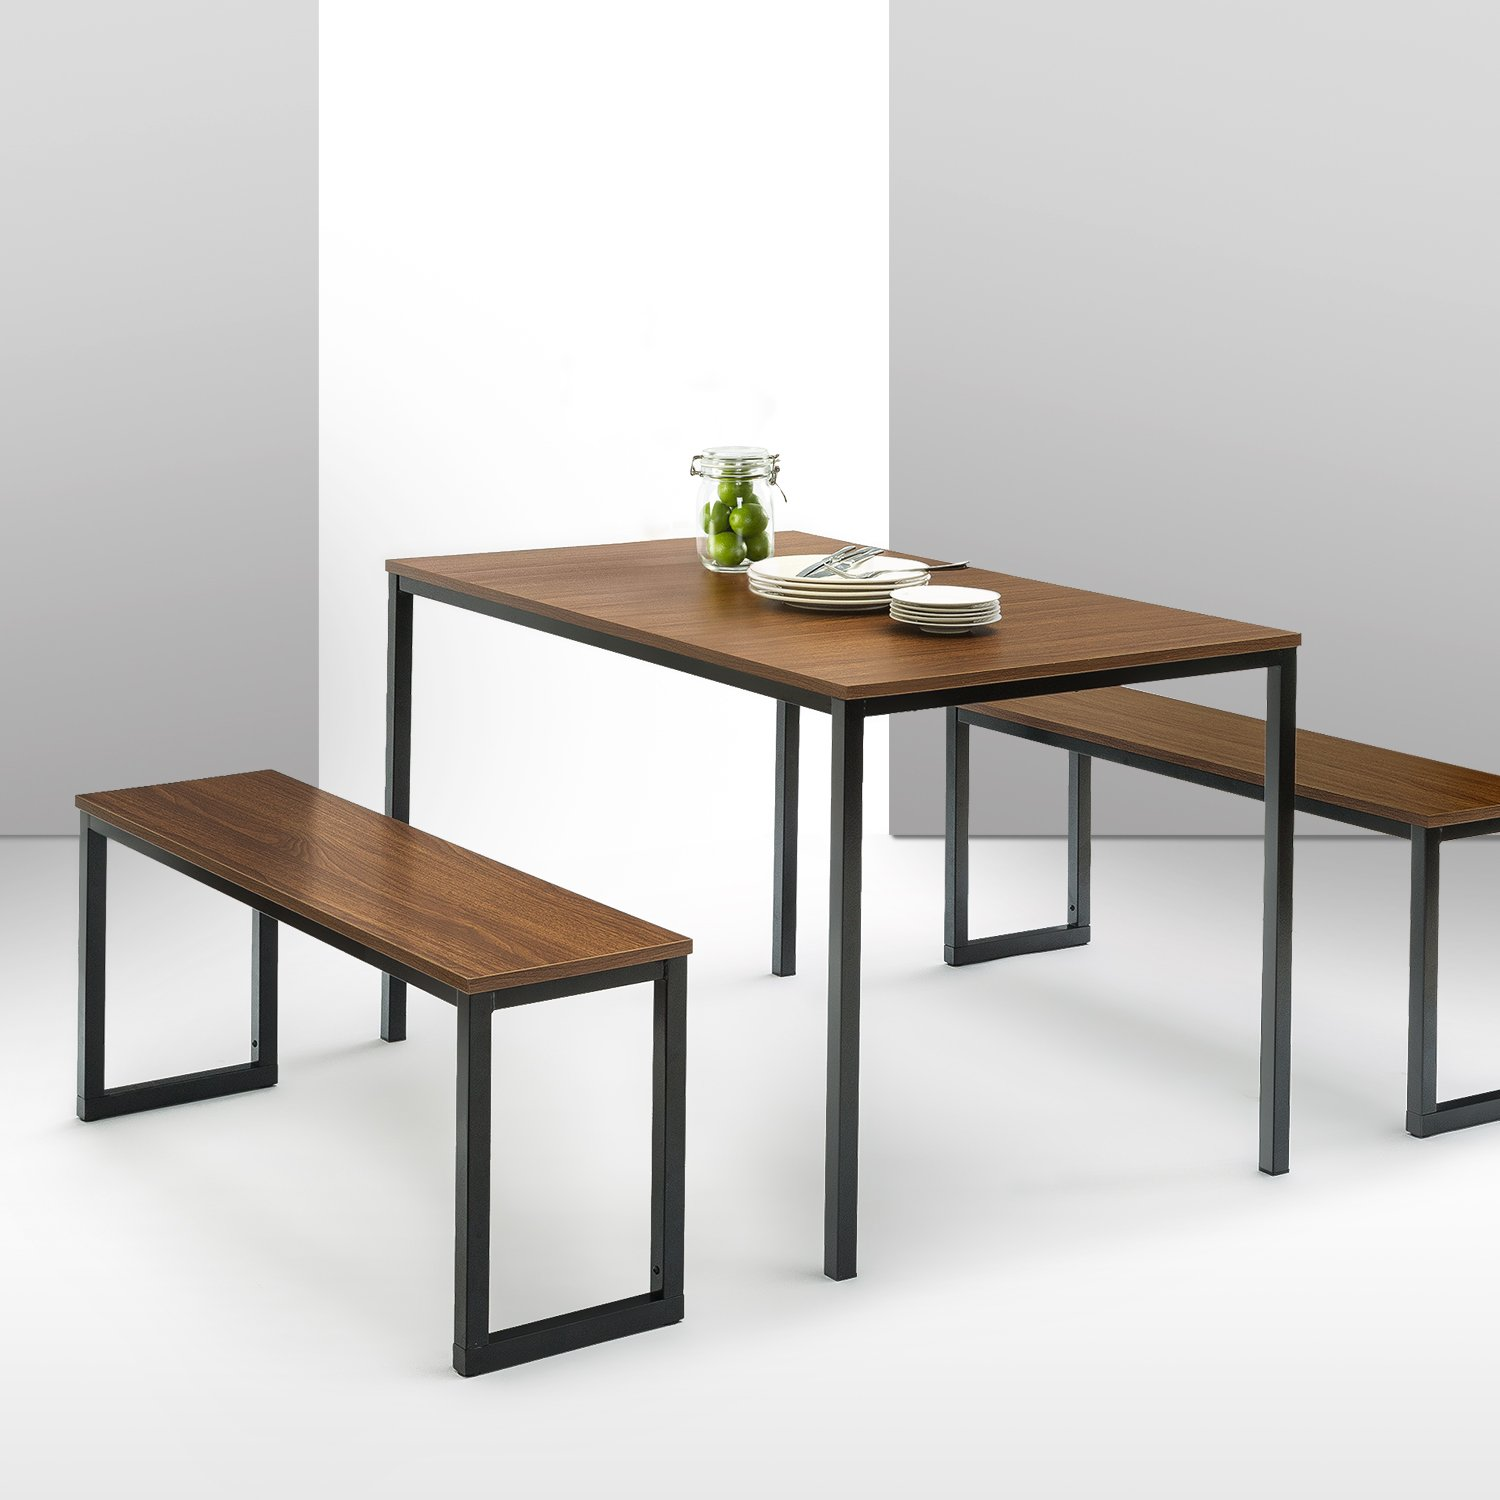 Zinus Modern Studio Collection Soho Dining Table with Two Benches / 3 piece set